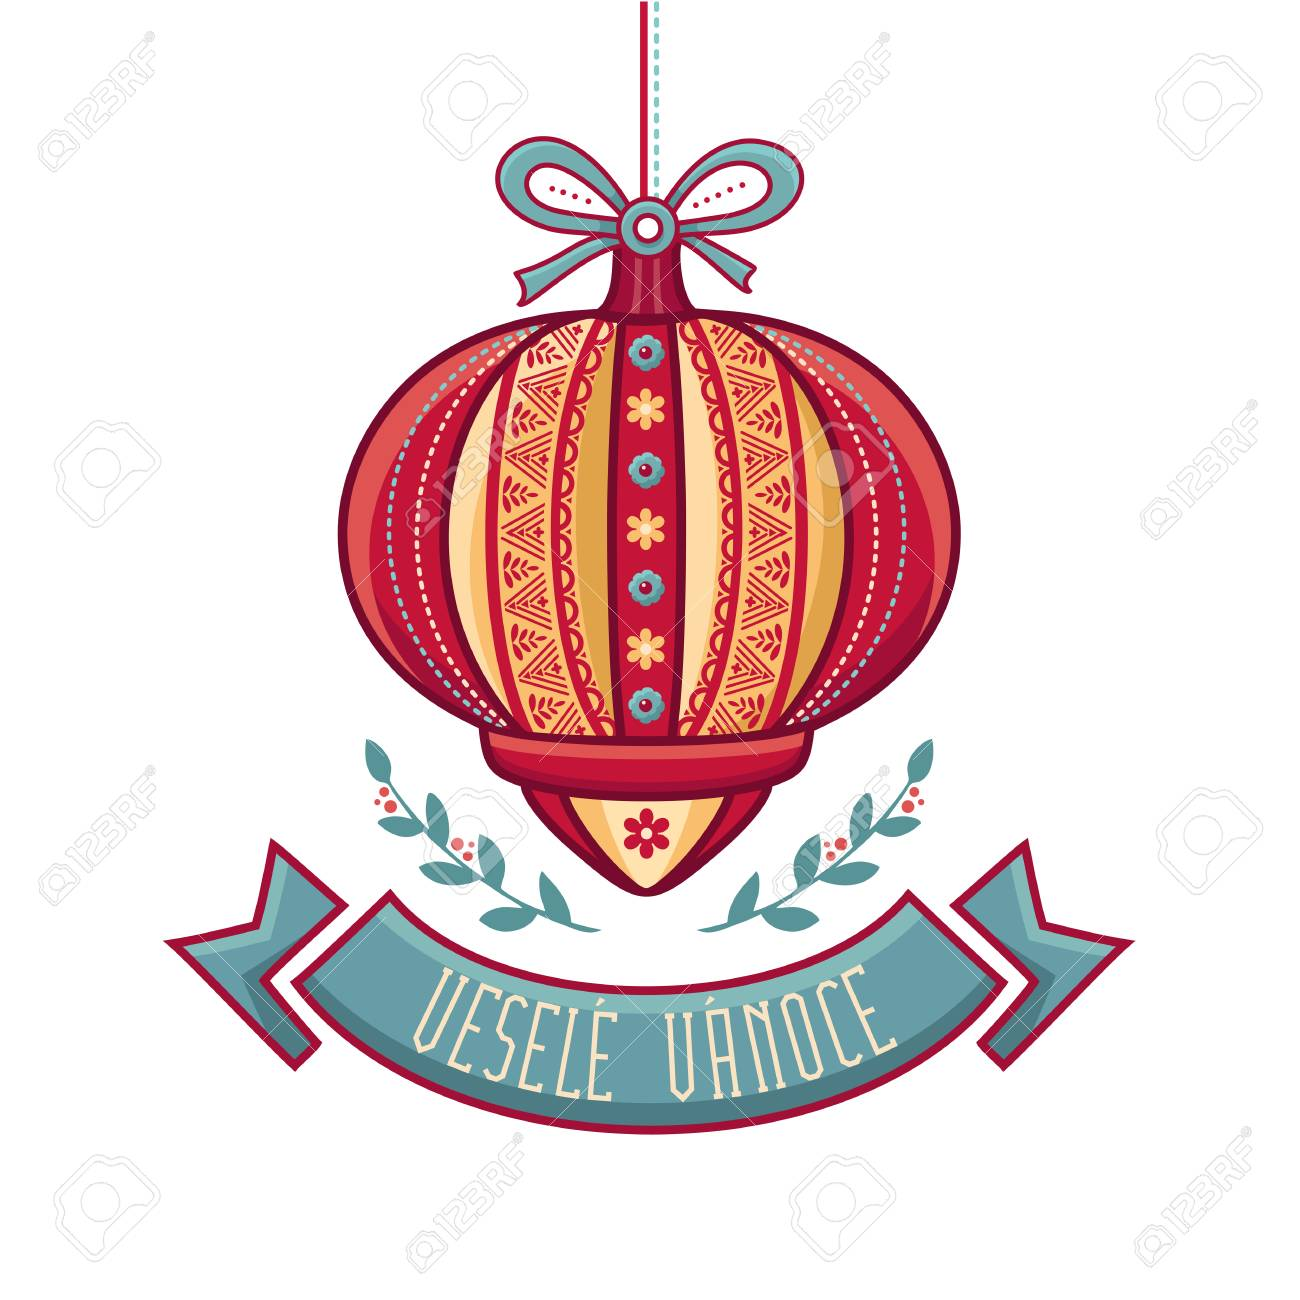 Vesele Vanoce Christmas Message Lettering Composition With